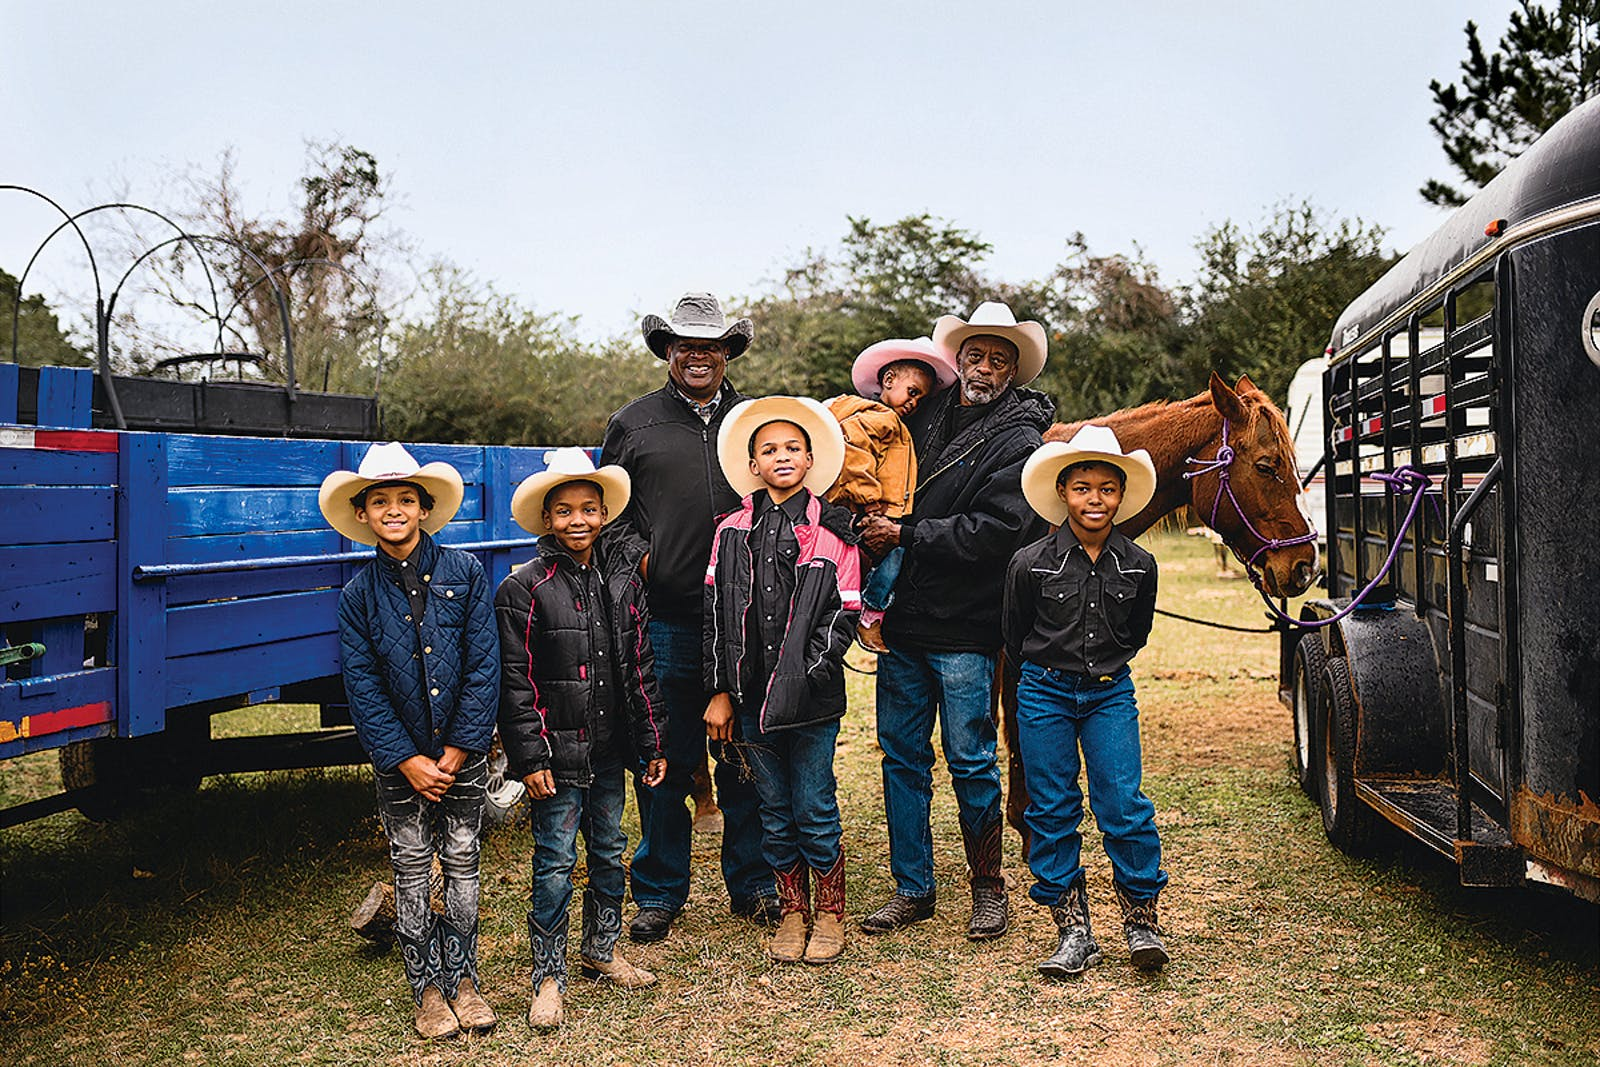 rodeo-kids-at-youth-riding-club-ranch